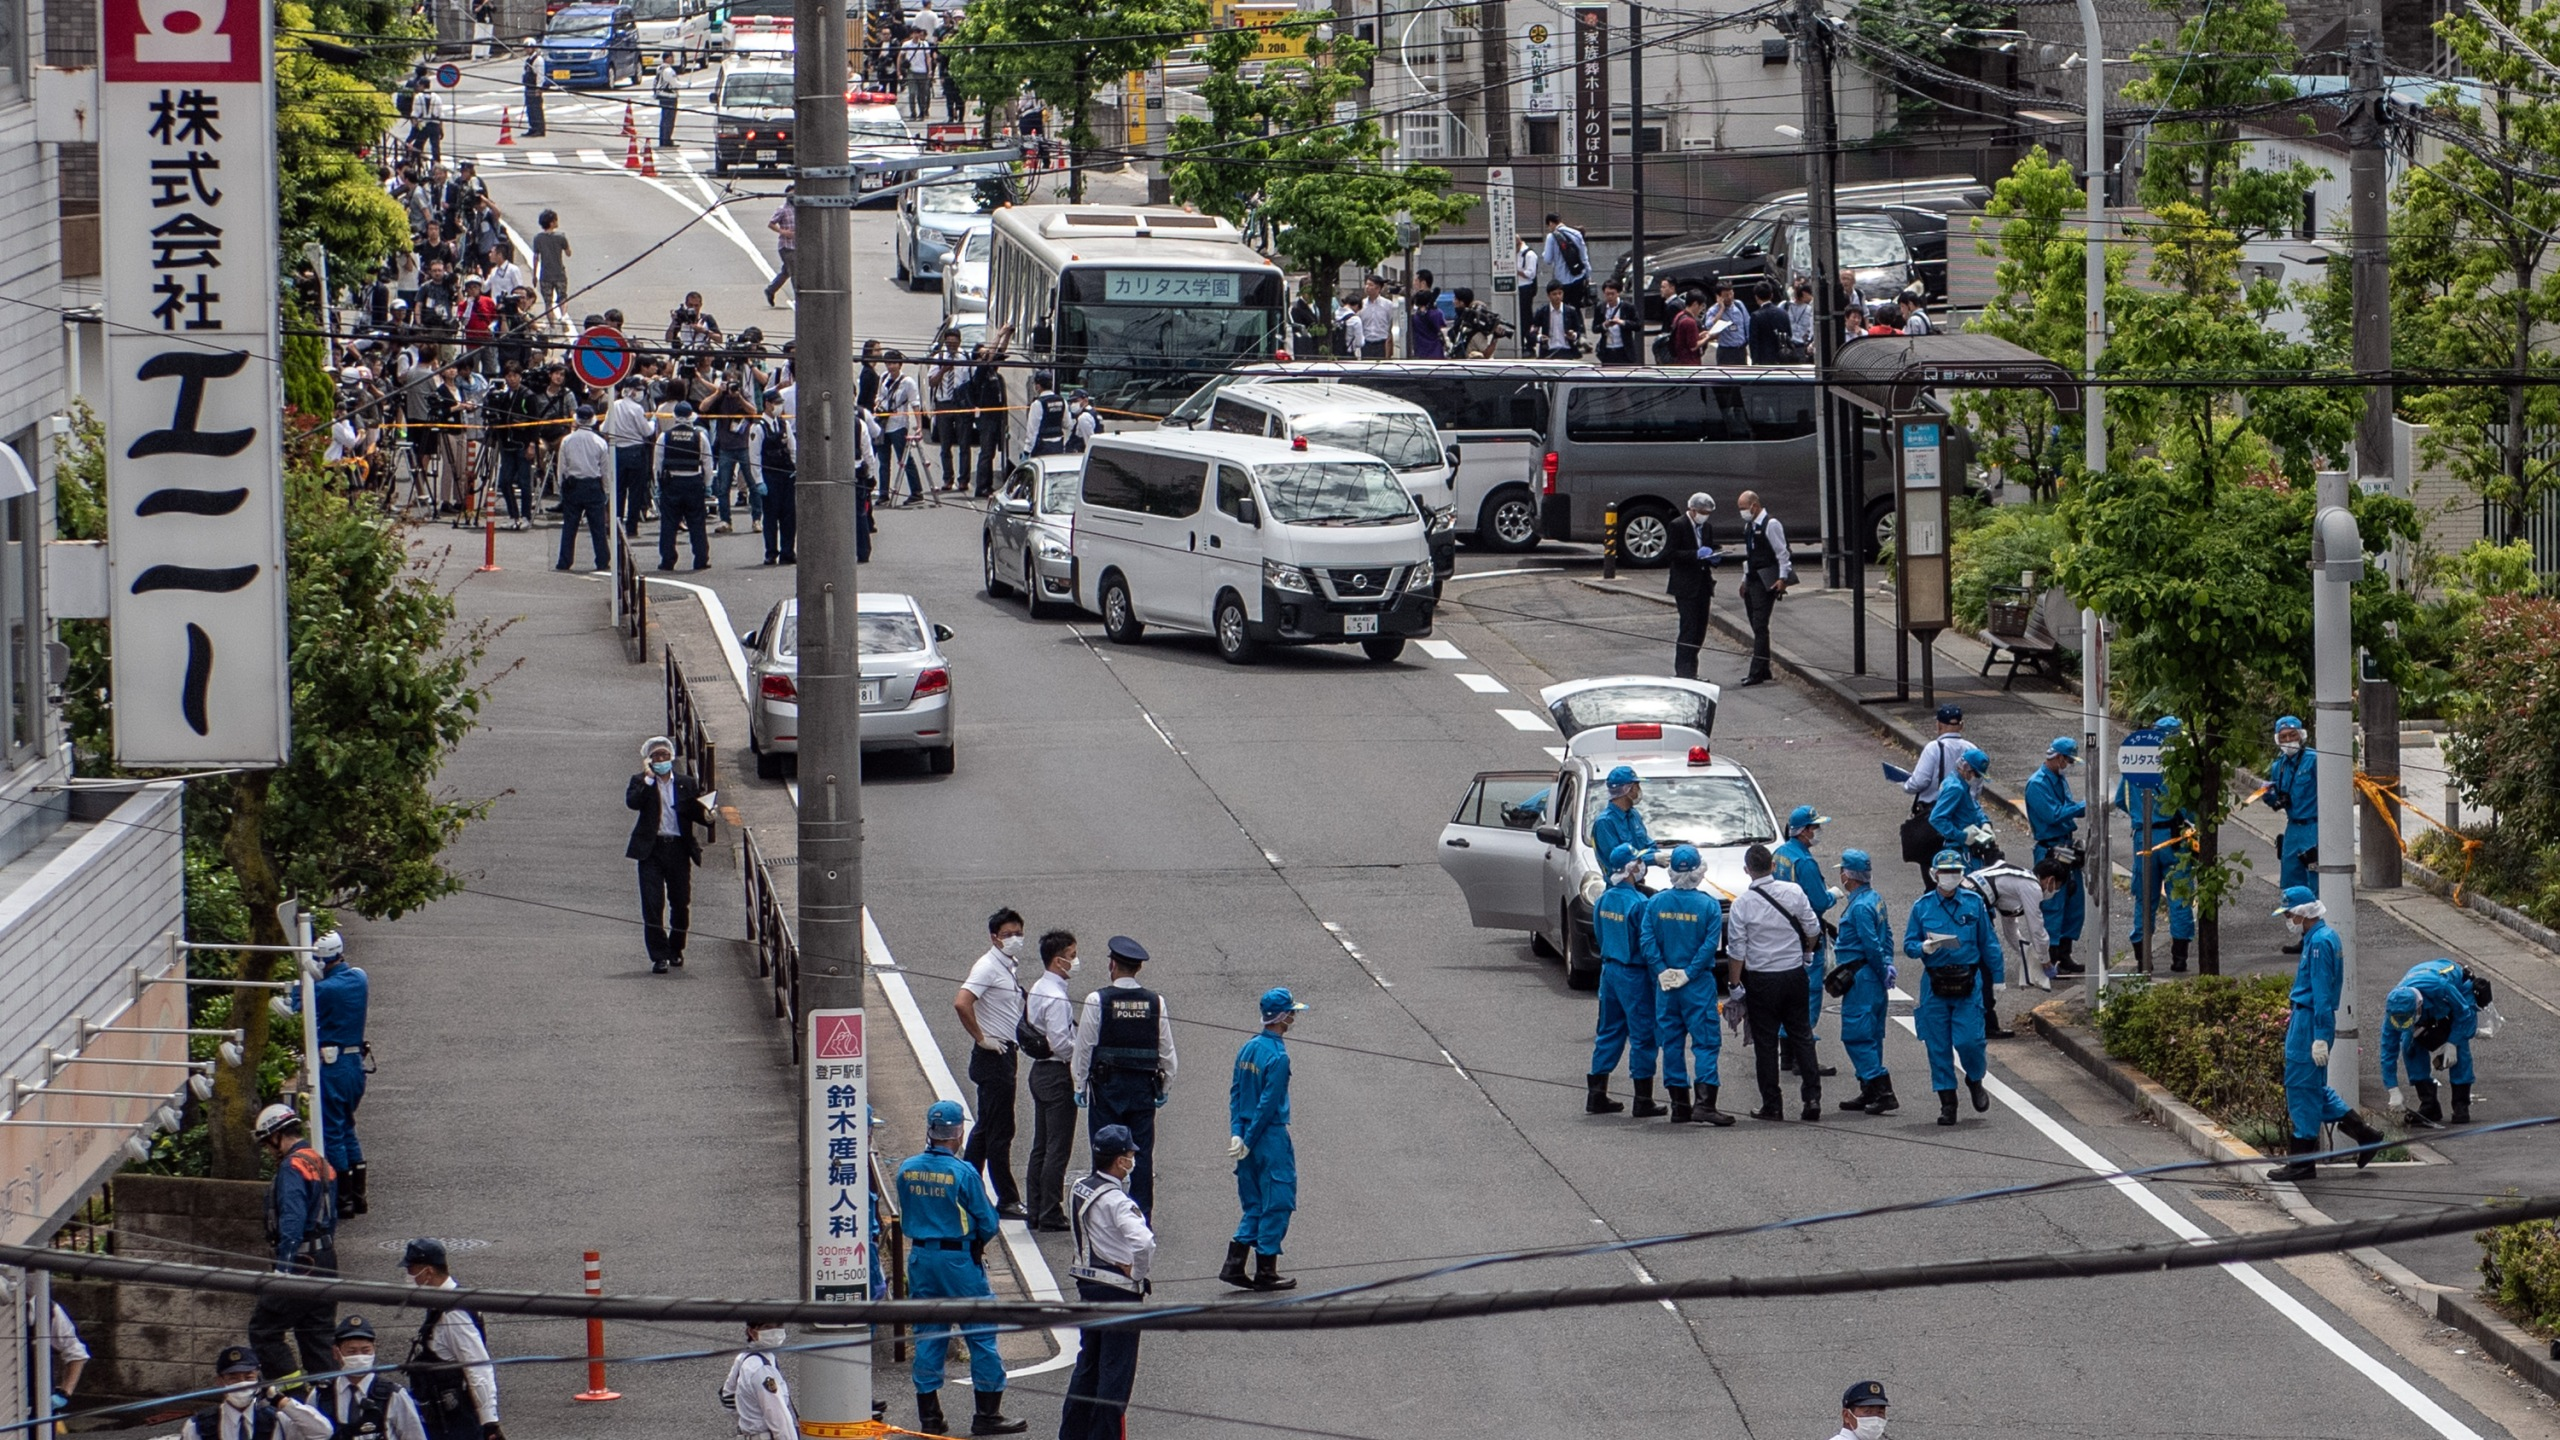 Police officers work at the scene of a mass stabbing in Kawasaki, Japan, on May 28, 2019. (Credit: Carl Court / Getty Images)